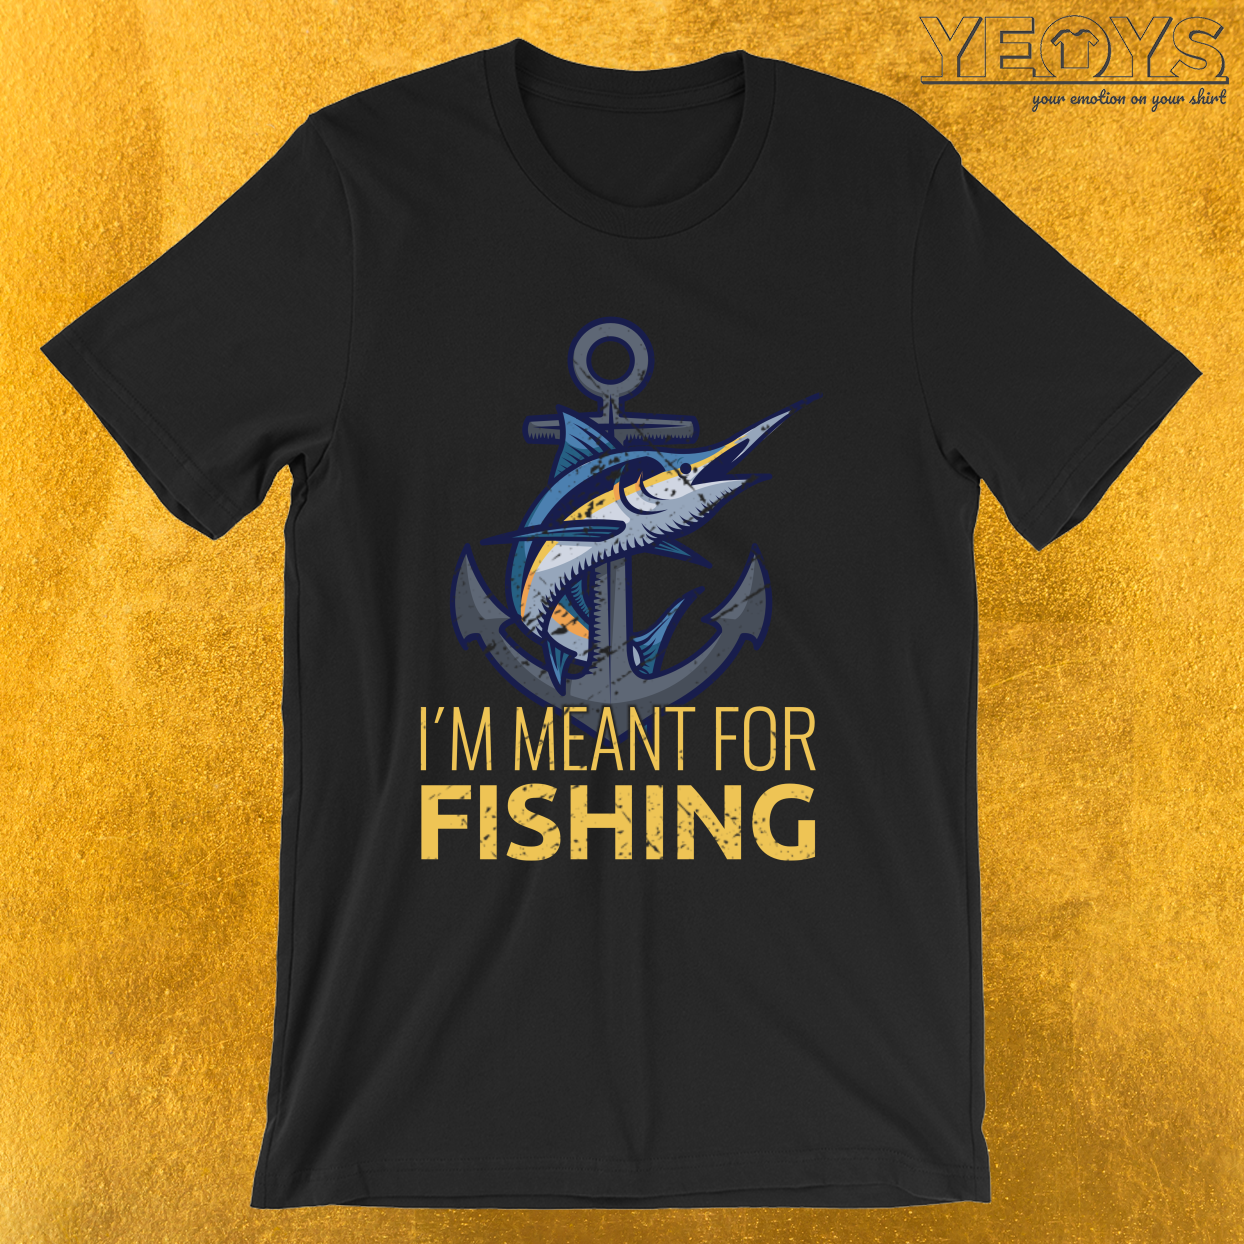 I'm Meant For Fishing – Old Fisherman Tee